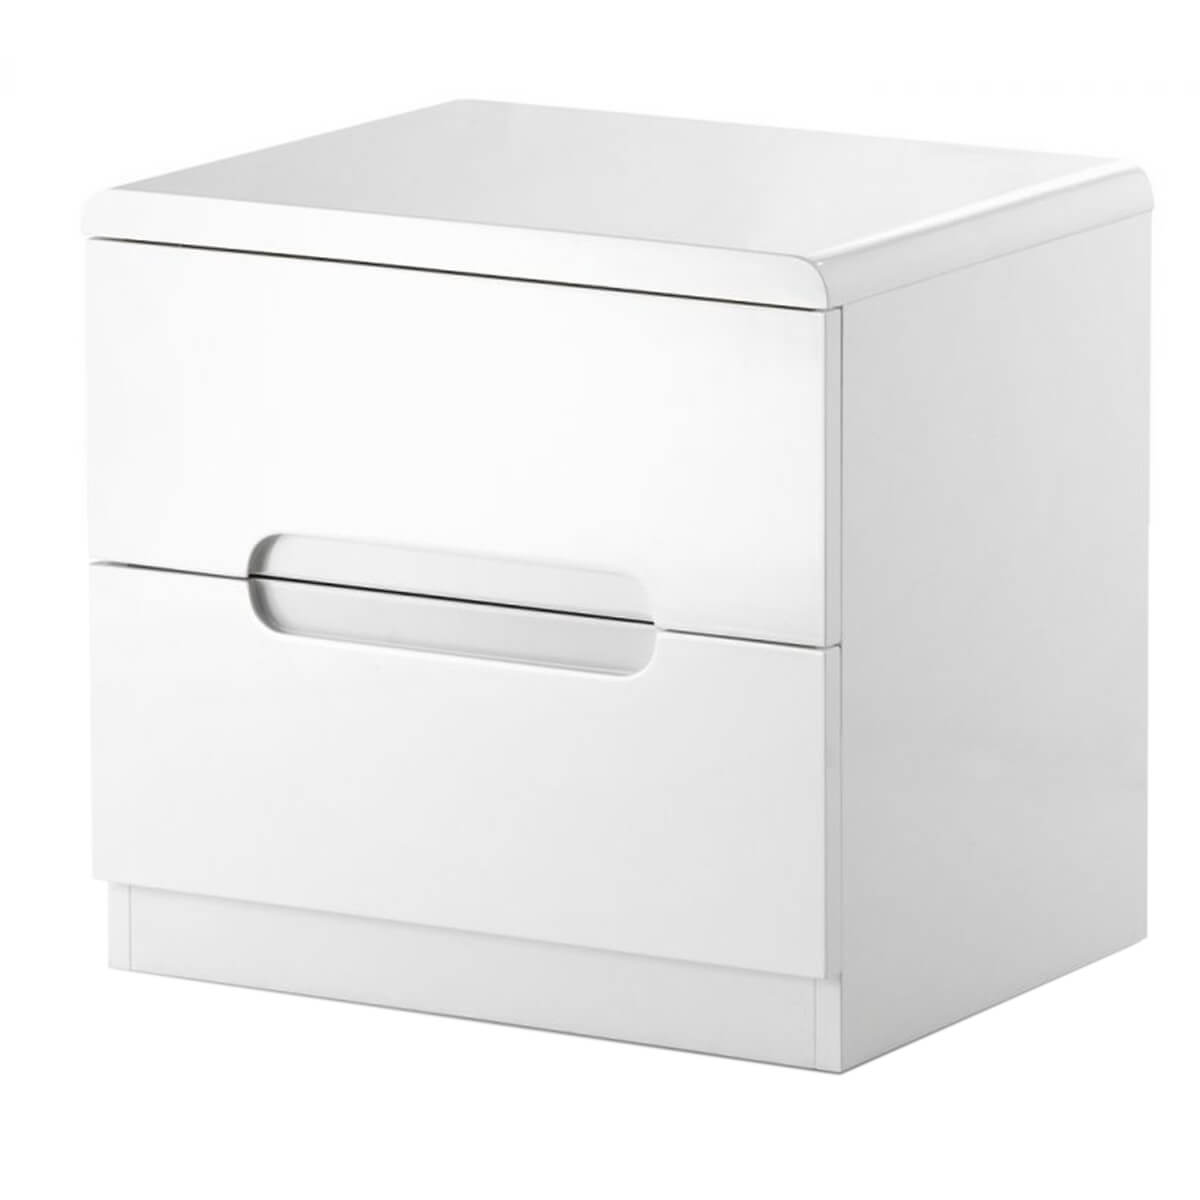 New york white high gloss bedside table 2 drawer bedsides fads new york bedside table white high gloss 2 drawer watchthetrailerfo